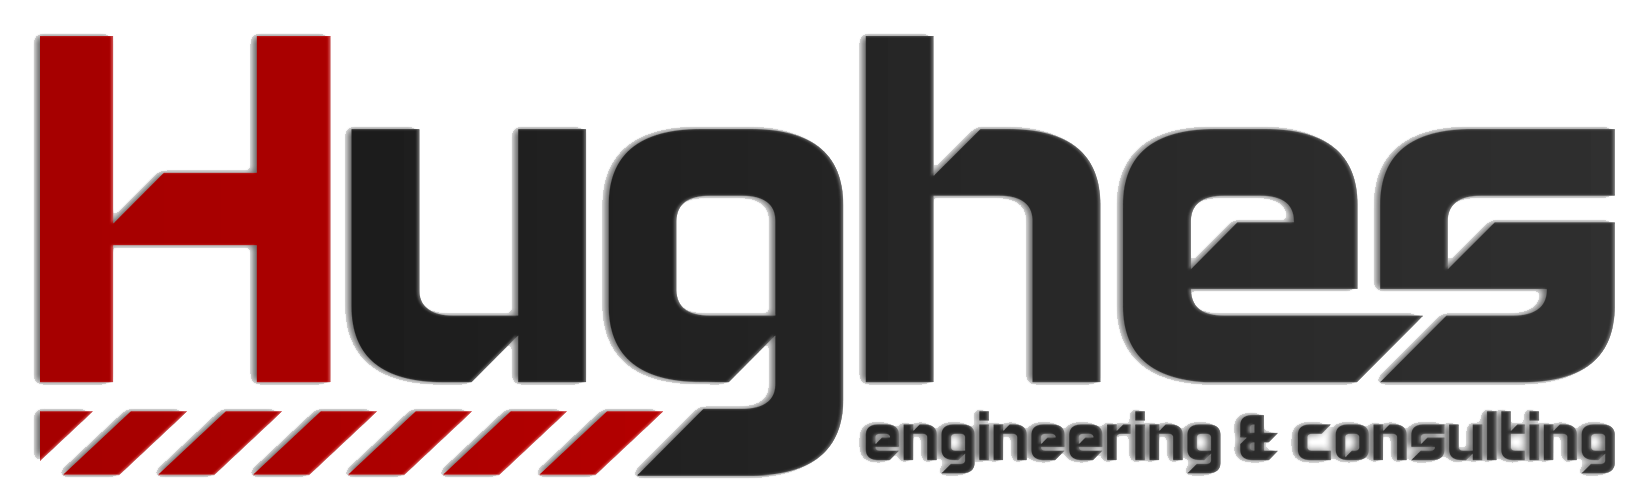 Hughes Engineering & Consulting